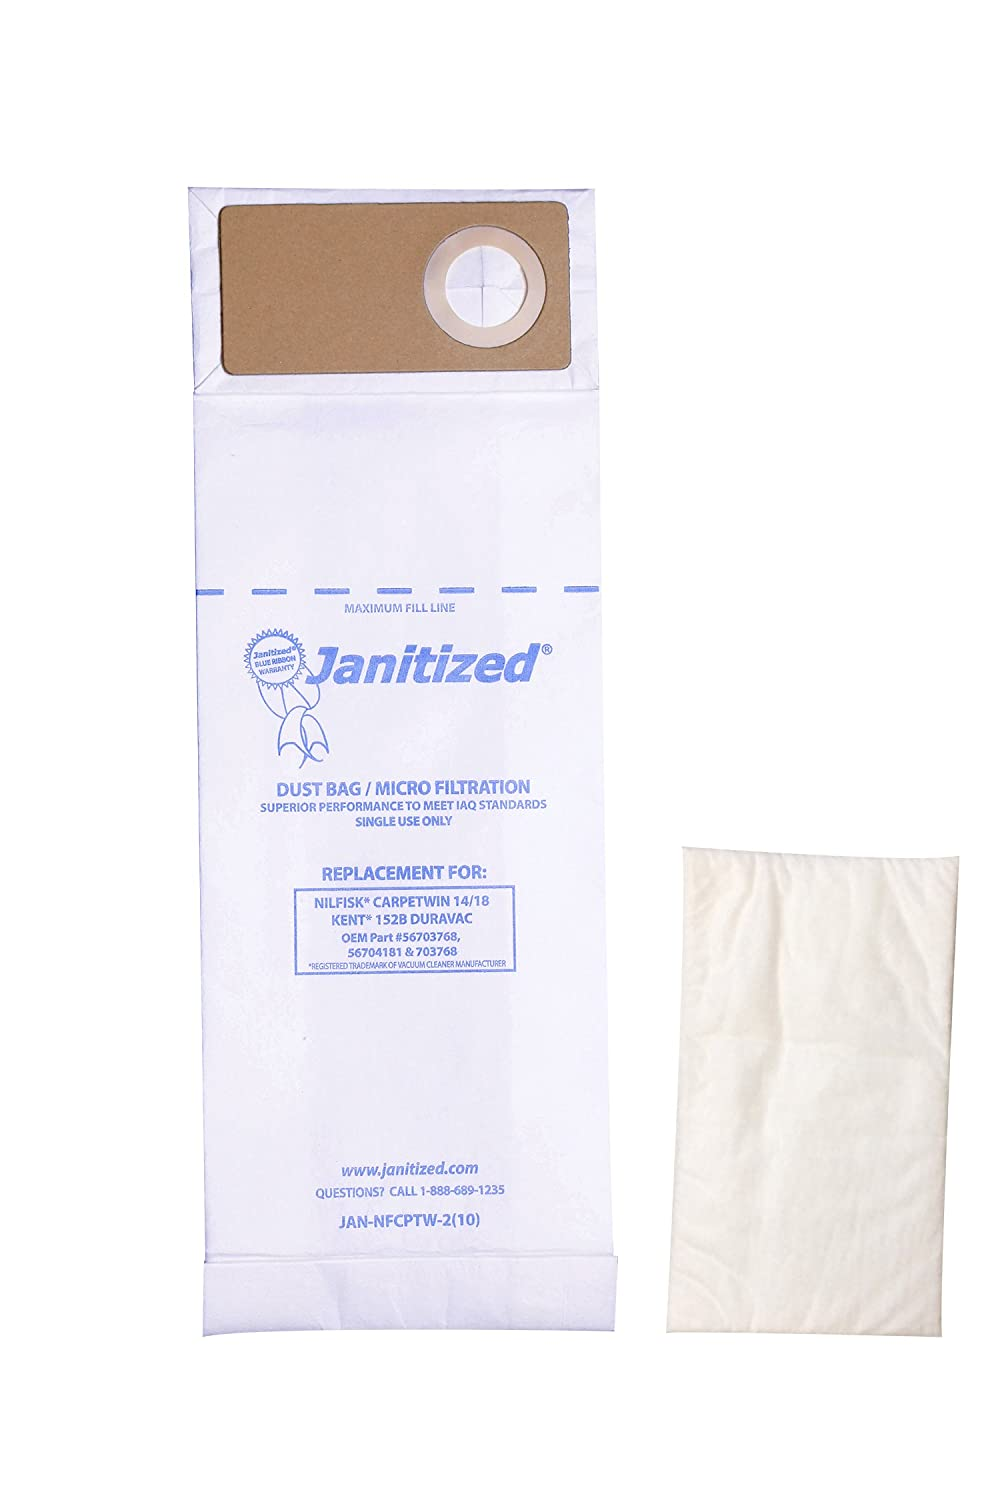 Janitized JAN-NFCPTW-2(10) Premium Replacement Commercial Vacuum Paper Bag, Nilfisk Advance CarpeTwin Upright 14/18, Advac and Kent 152B, DuraVac, OEM# 56703768, 56704181 and 703768 (Pack of 10)